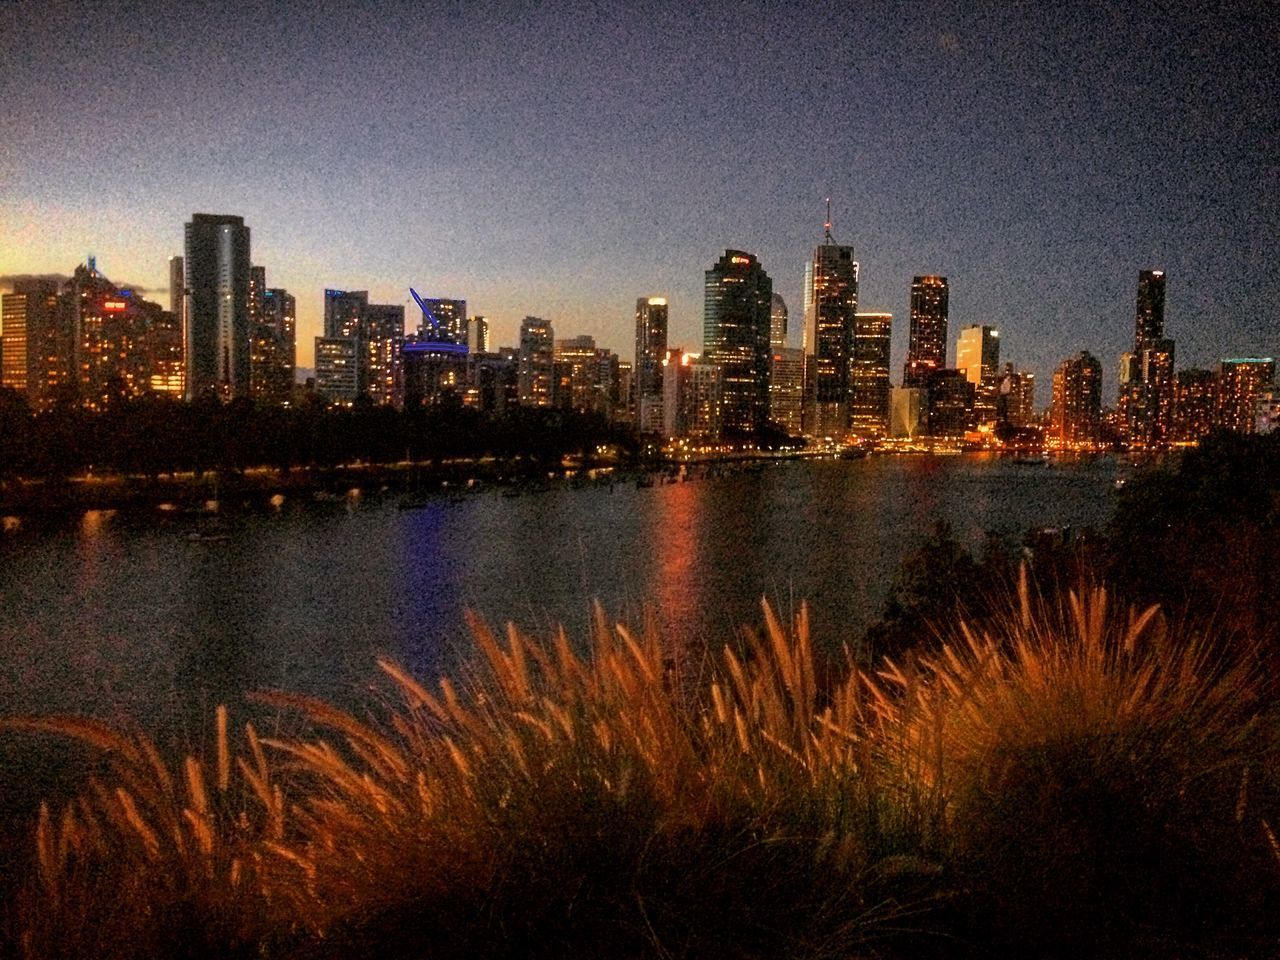 skyscraper, architecture, building exterior, cityscape, city, urban skyline, built structure, tower, travel destinations, skyline, modern, growth, no people, river, sky, tall, outdoors, illuminated, clear sky, night, water